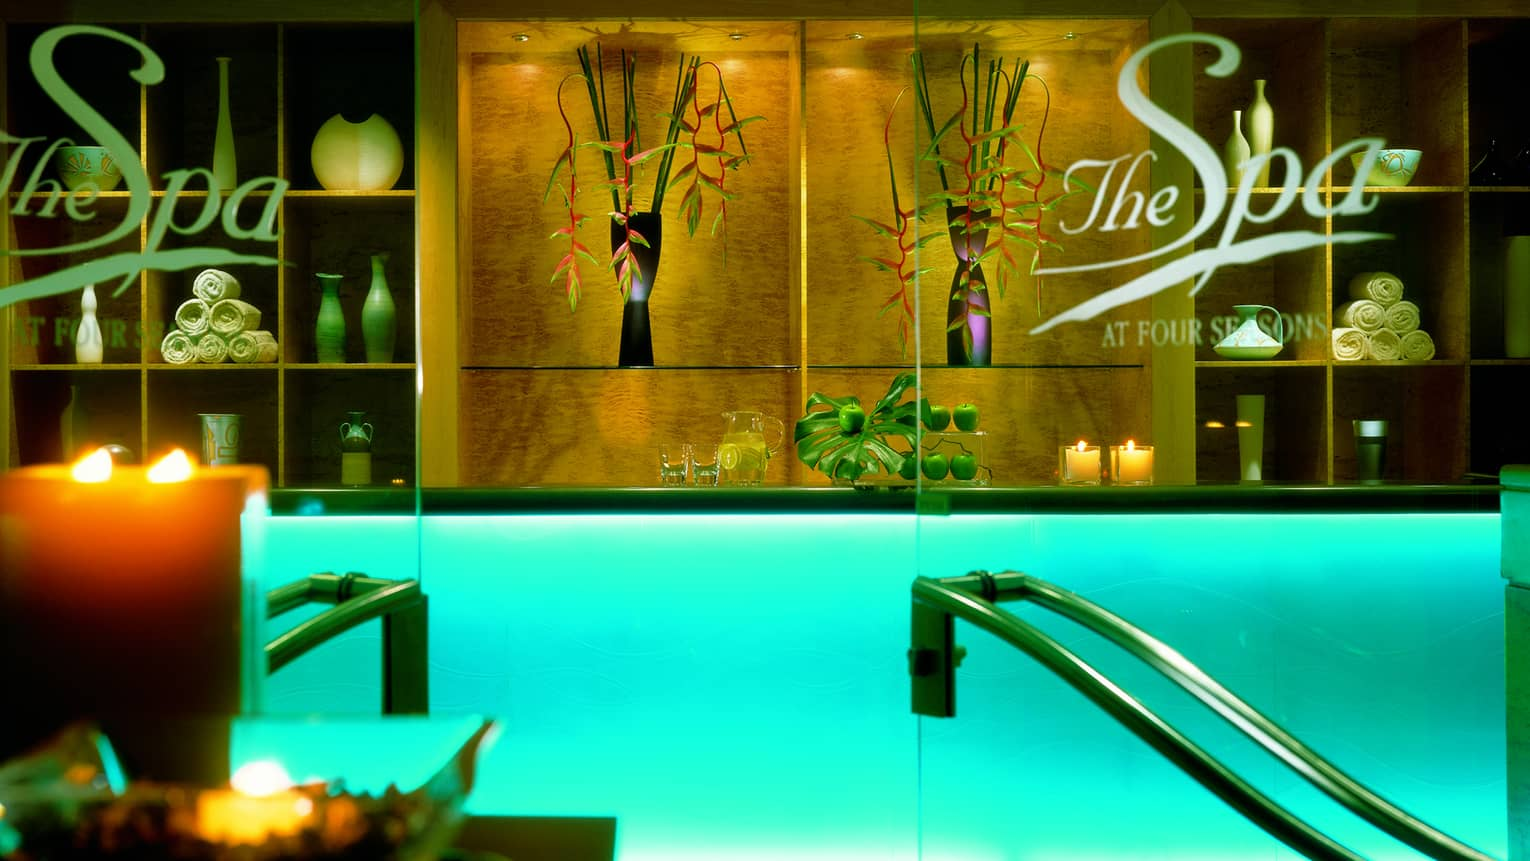 Glass doors at spa lobby, reception desk with with glowing candles, rolled up white towels on shelf